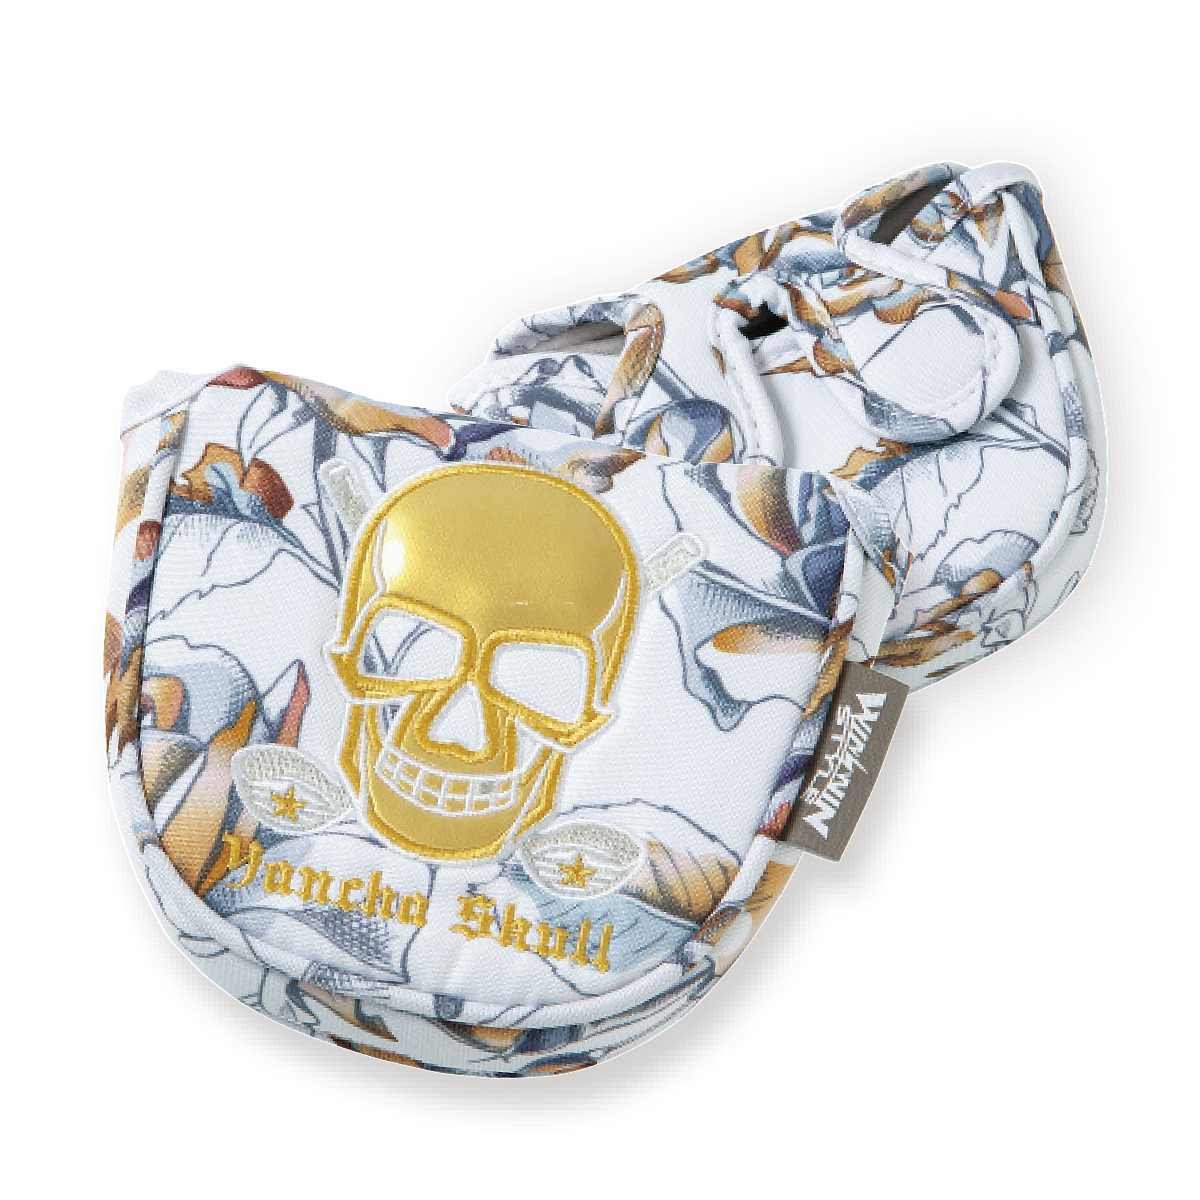 YANCHA SKULL ROSE PUTTER COVER マレットタイプ